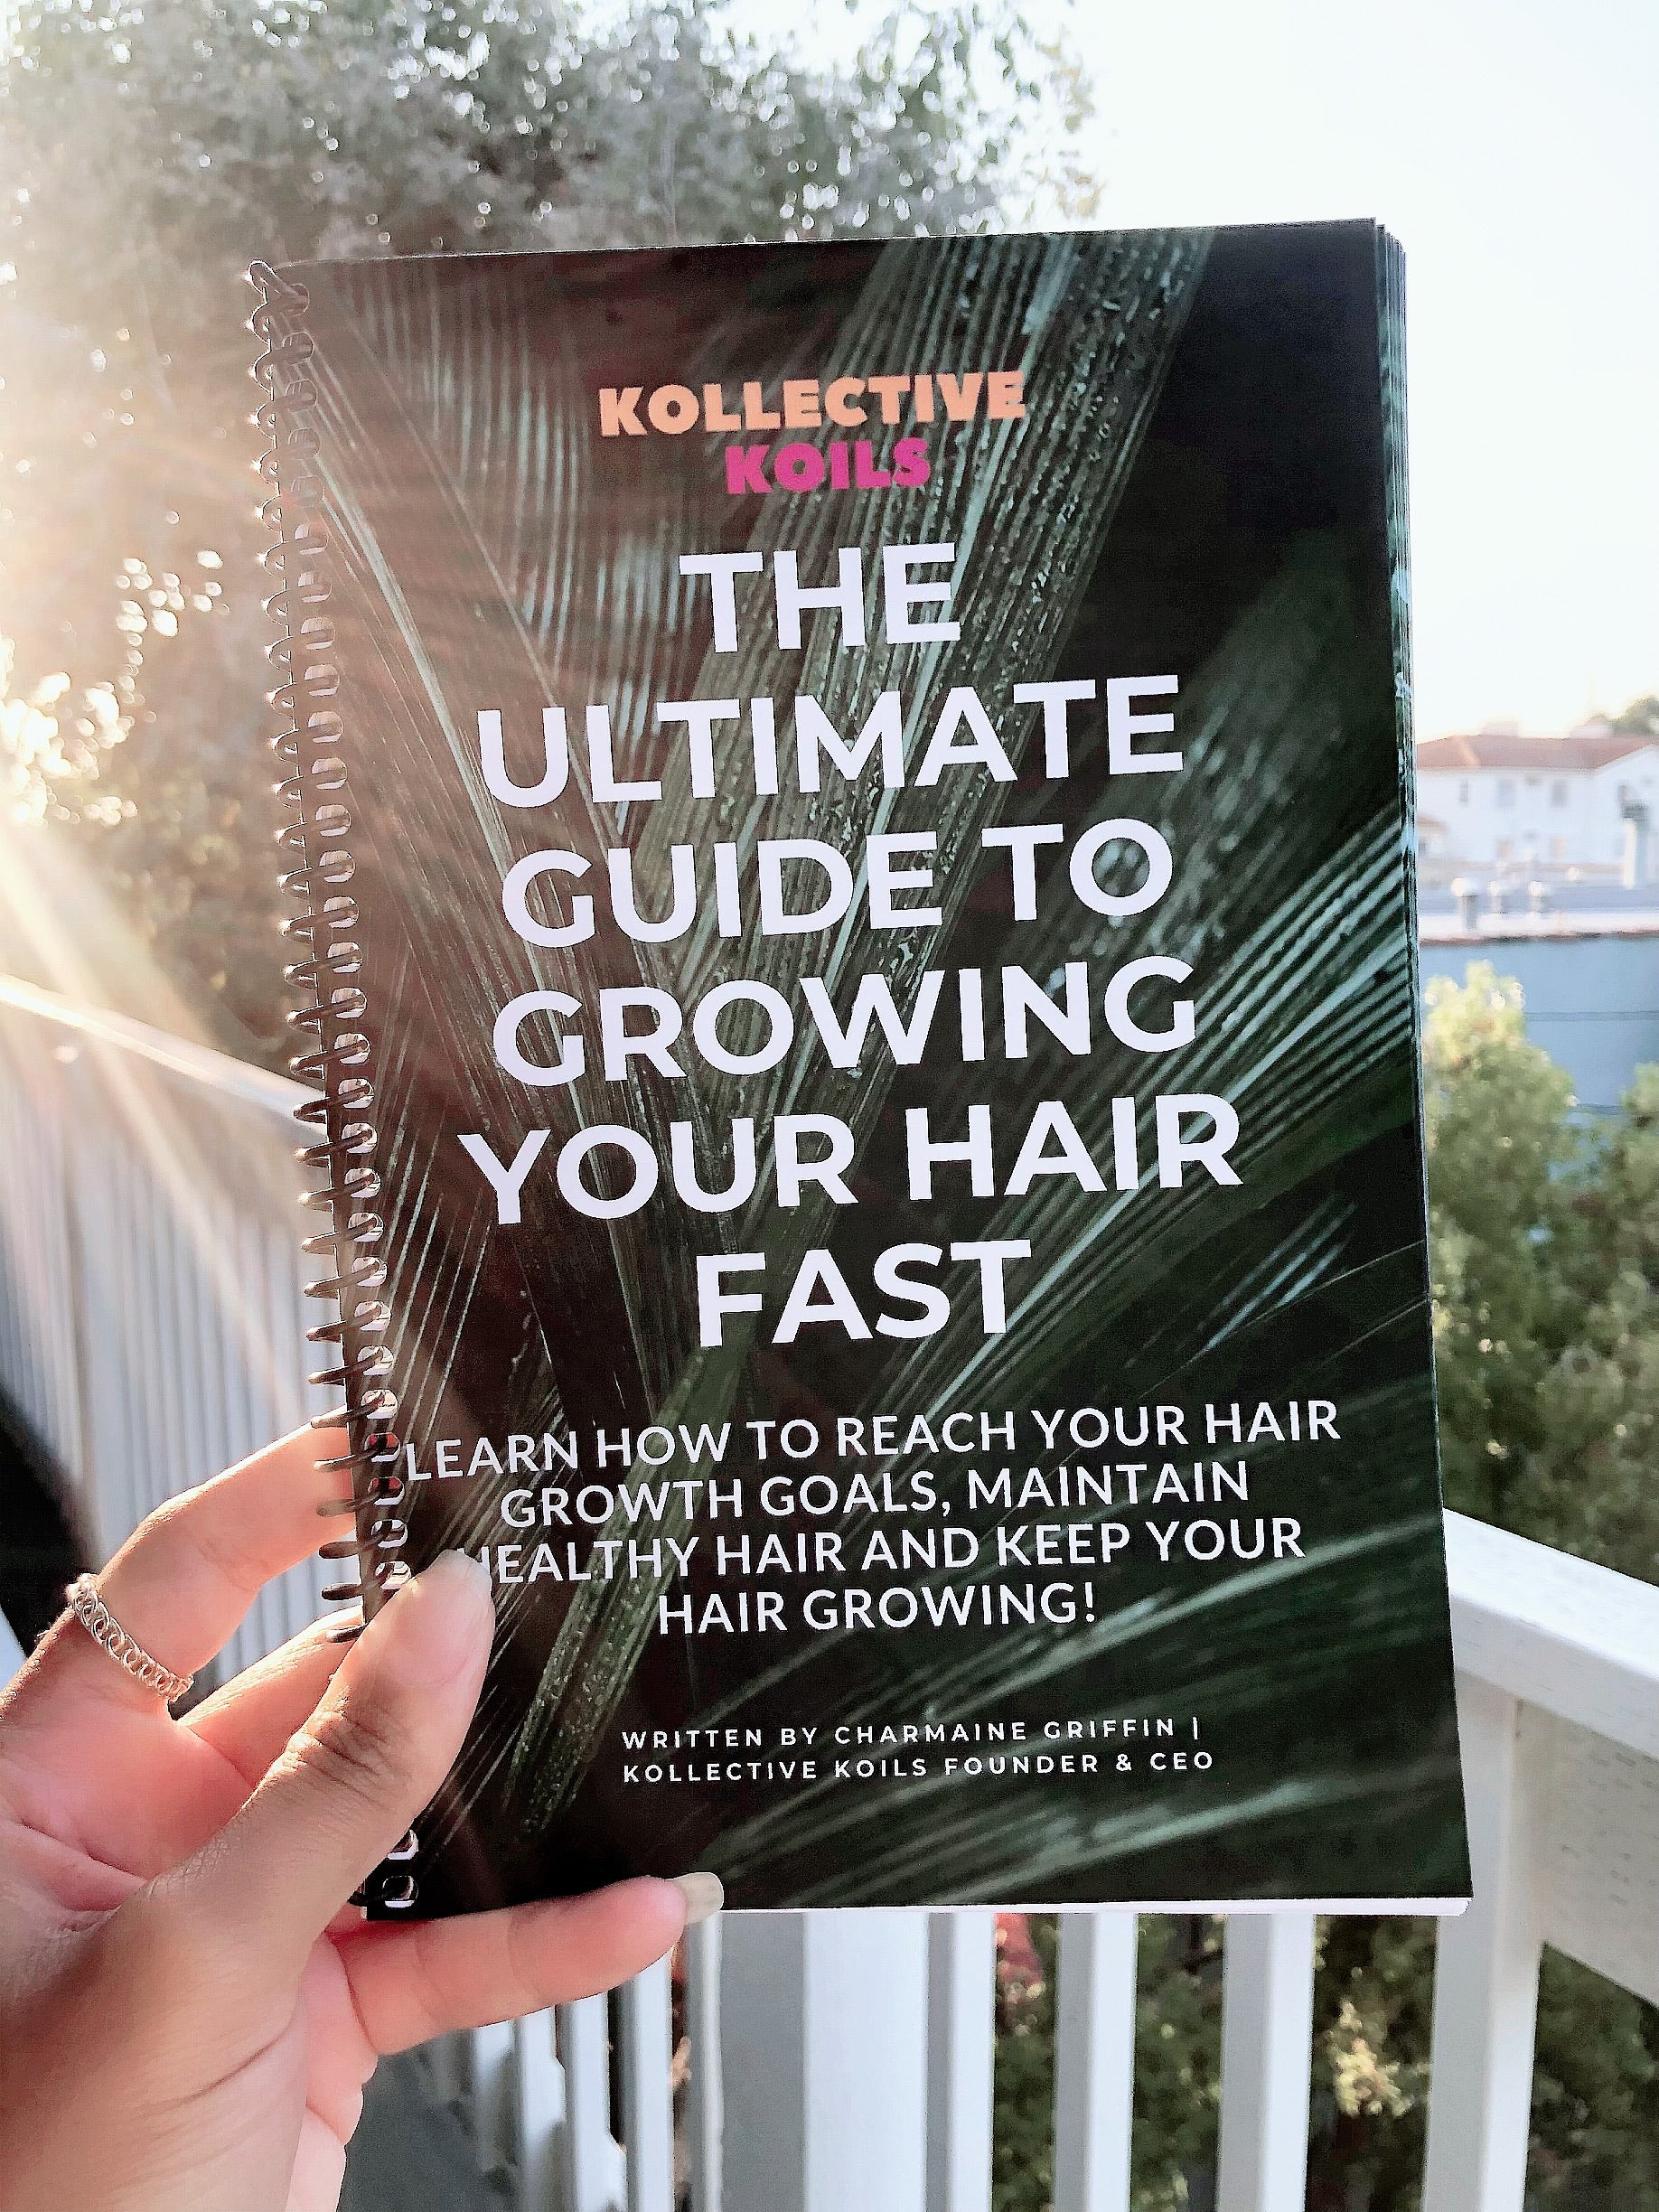 Book: The Ultimate Guide to Growing Your Hair Fast